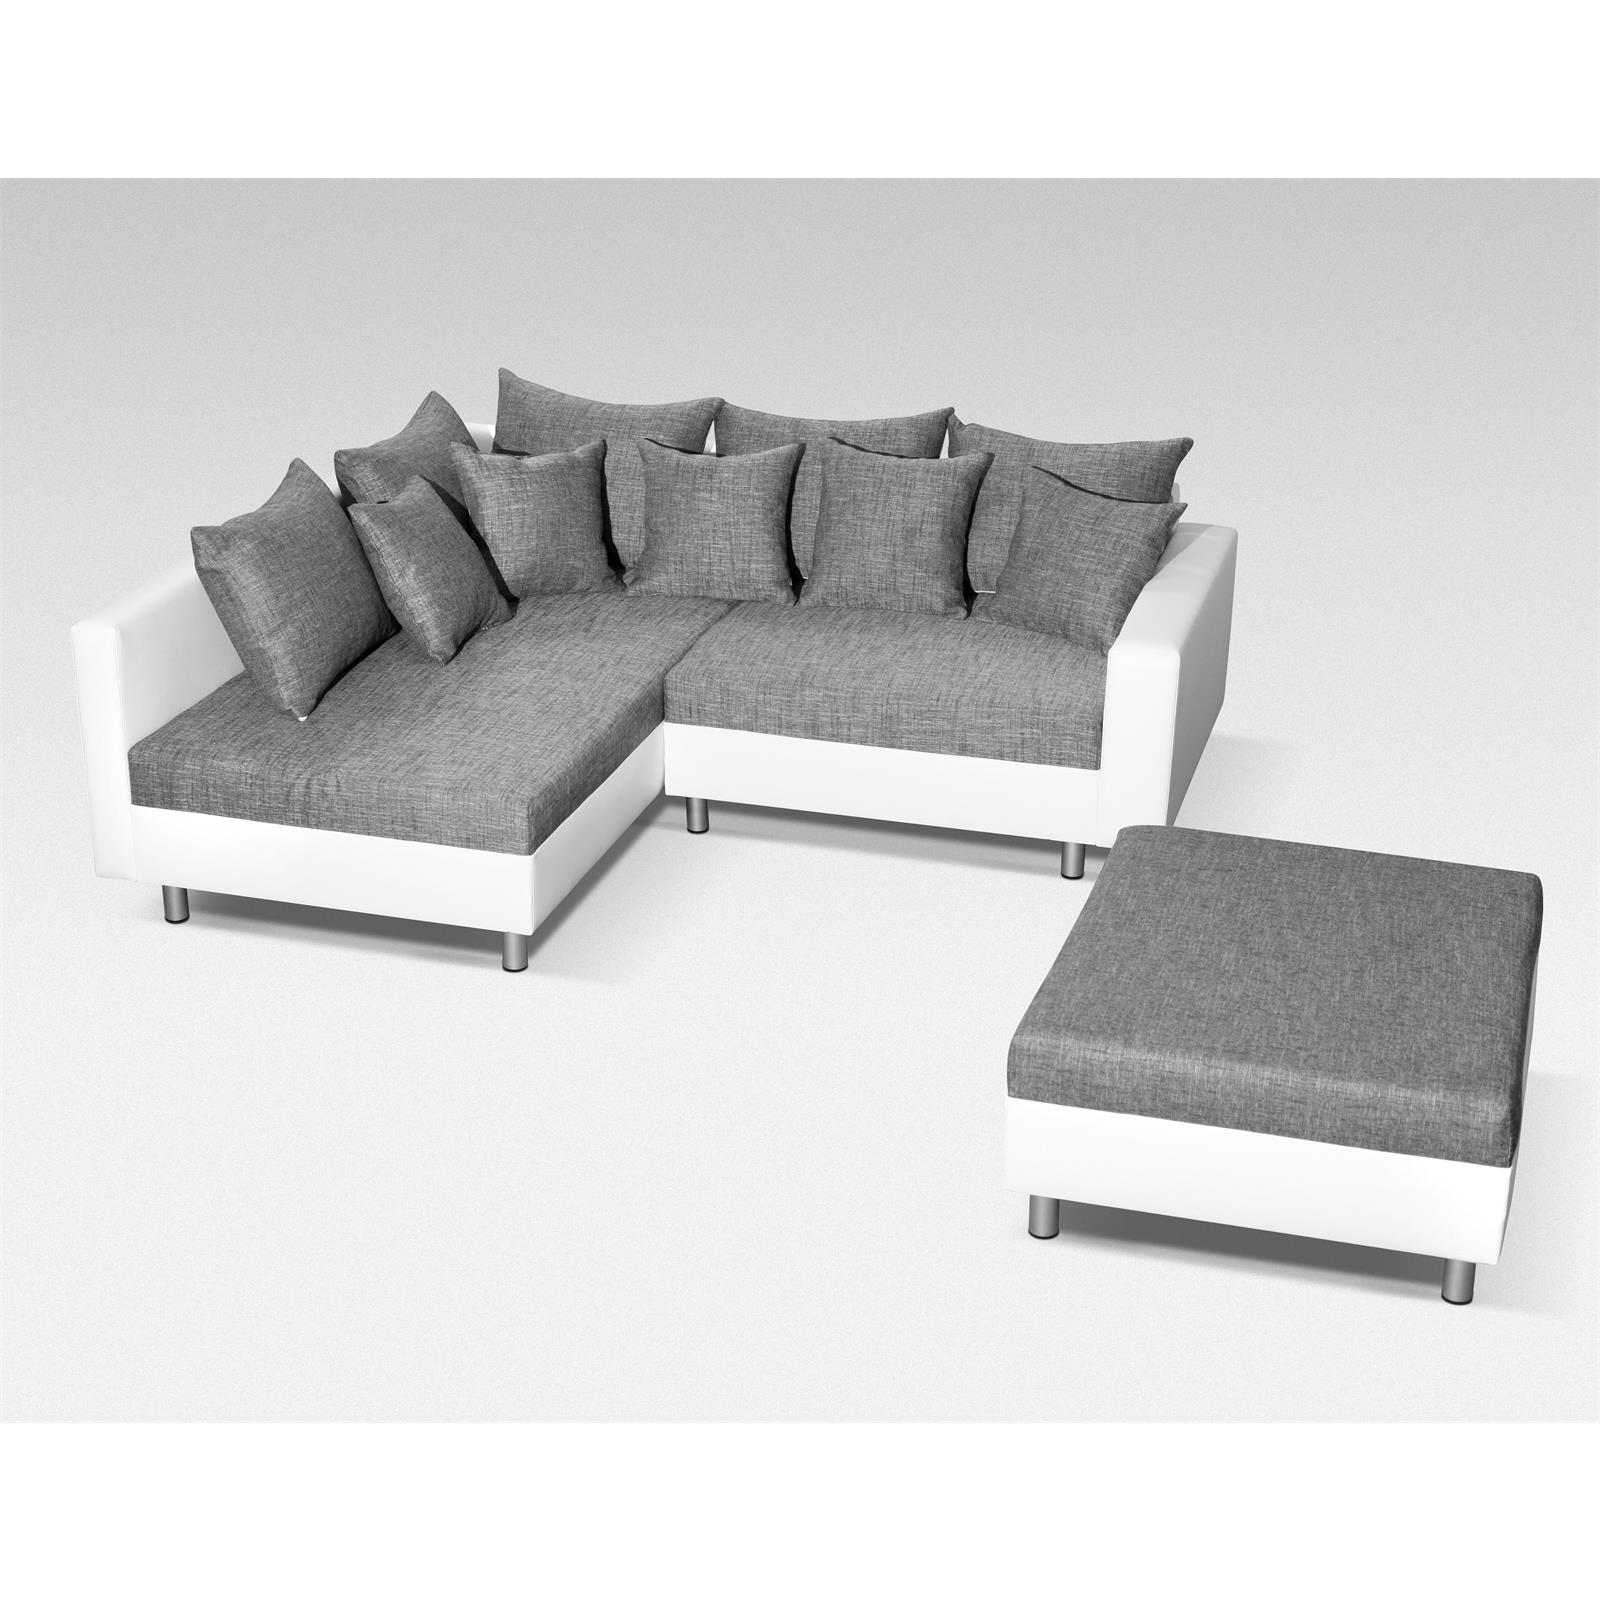 ecksofa couch mit hocker in schwarz grau weiss polster garnitur ottomane links ebay. Black Bedroom Furniture Sets. Home Design Ideas